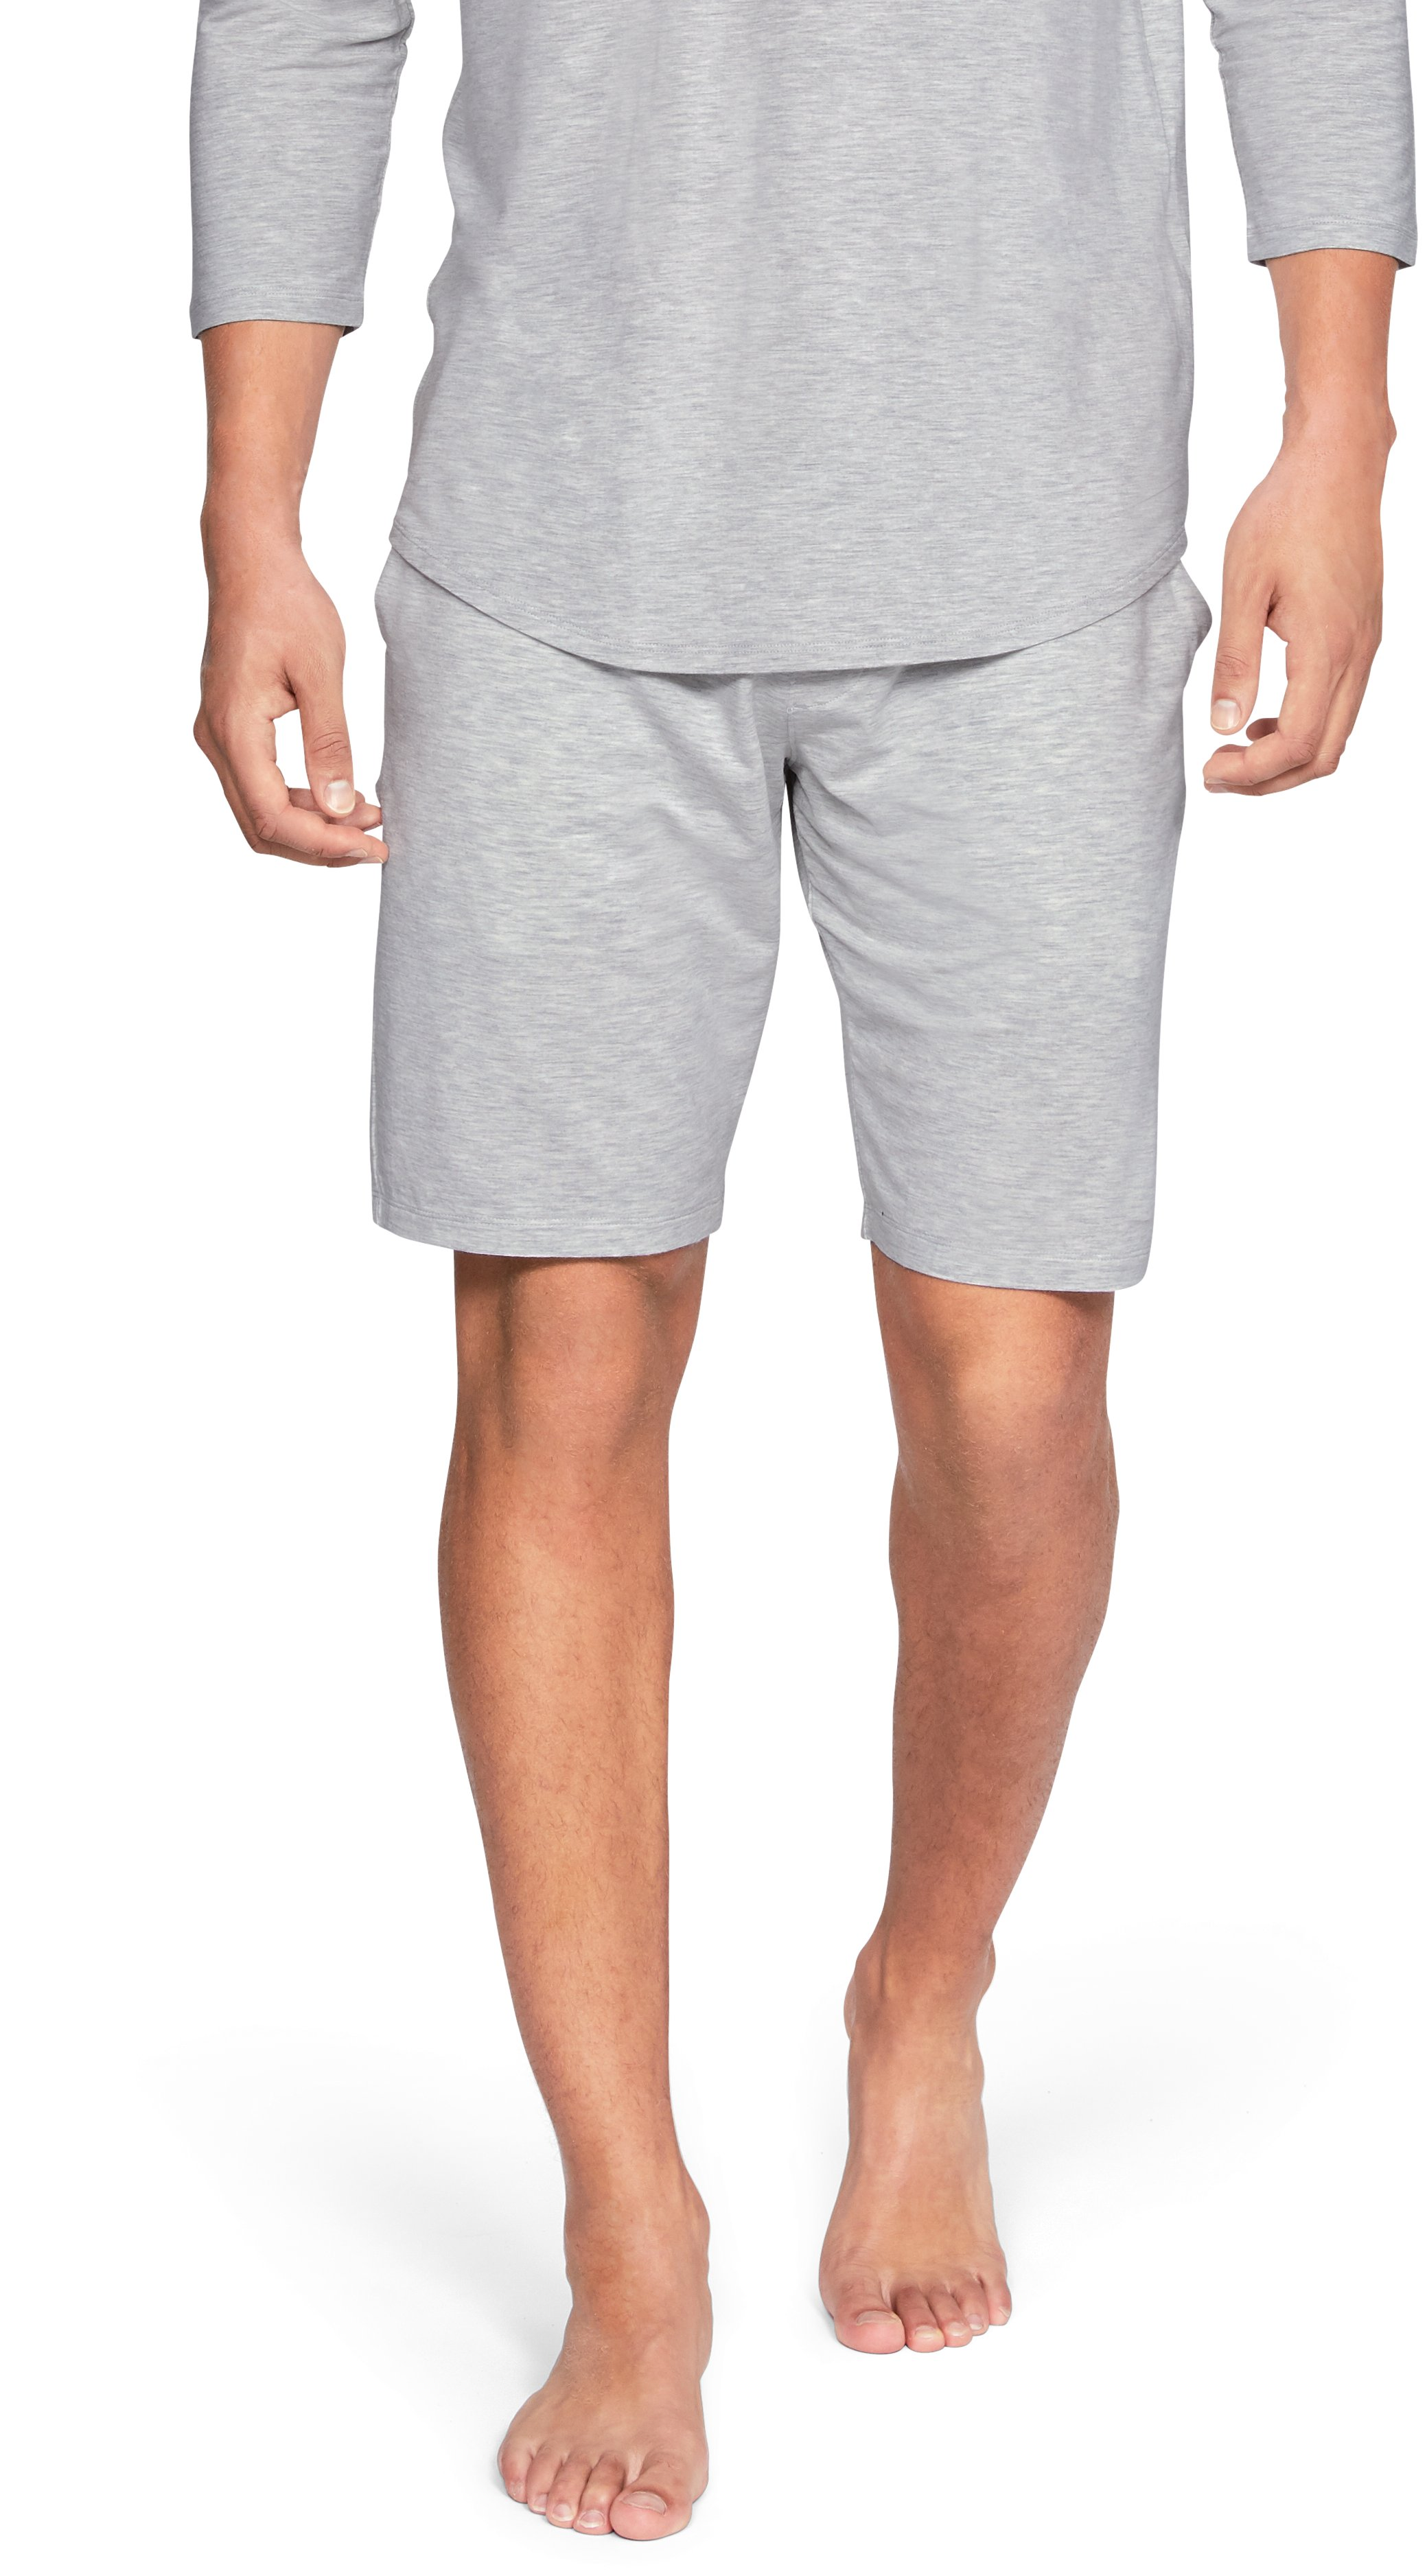 Men's Athlete Recovery Sleepwear™ Ultra Comfort Shorts, Elemental Medium Heather, zoomed